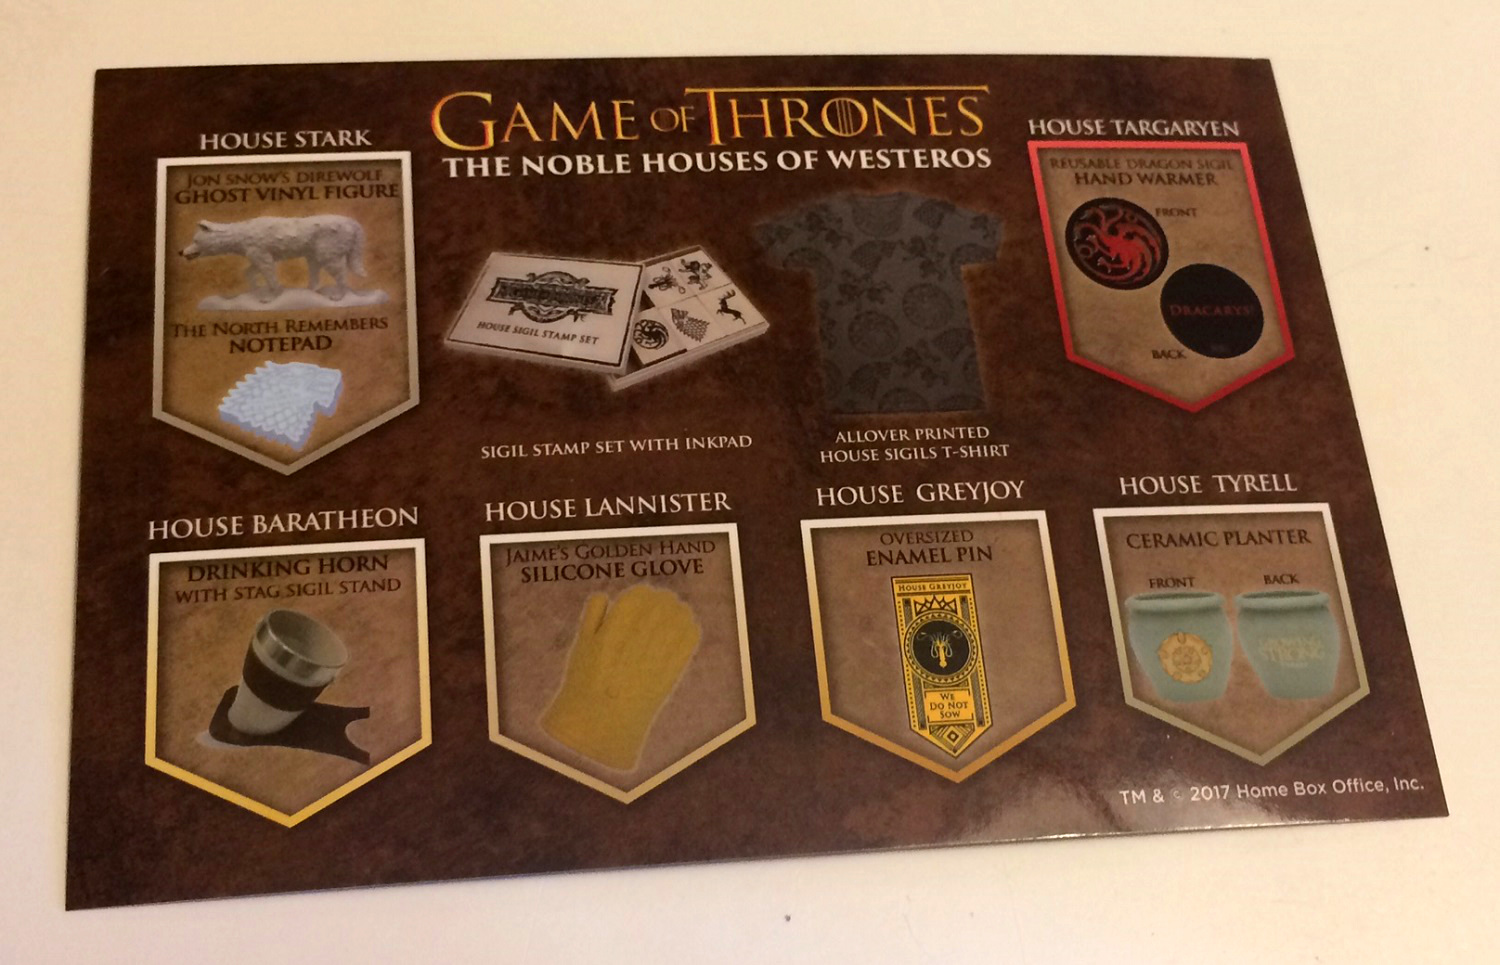 CultureFly Game of Thrones Subscription Box card